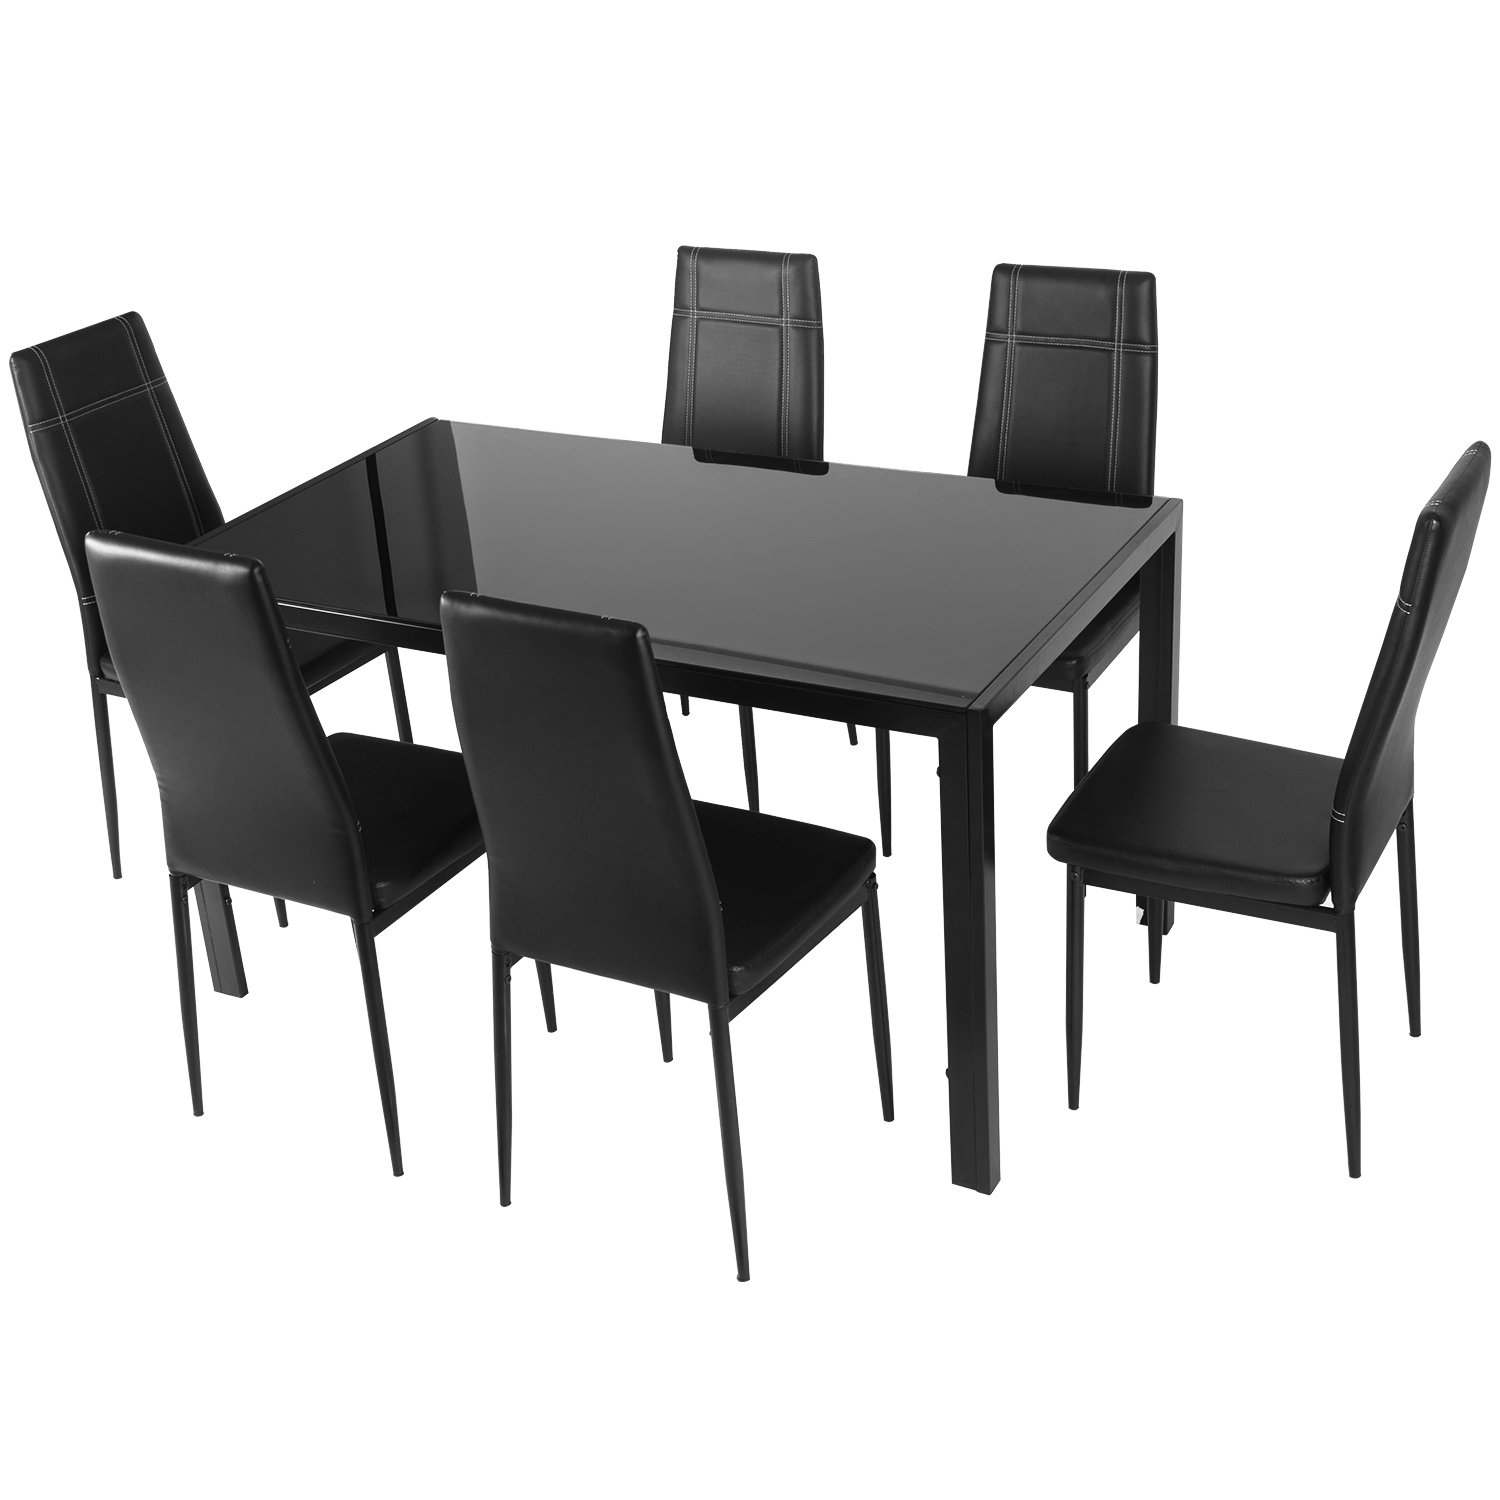 Inspiration about Most Current Maynard 5 Piece Dining Sets Throughout Merax Maynard 7 Piece Dining Set & Reviews (#2 of 20)